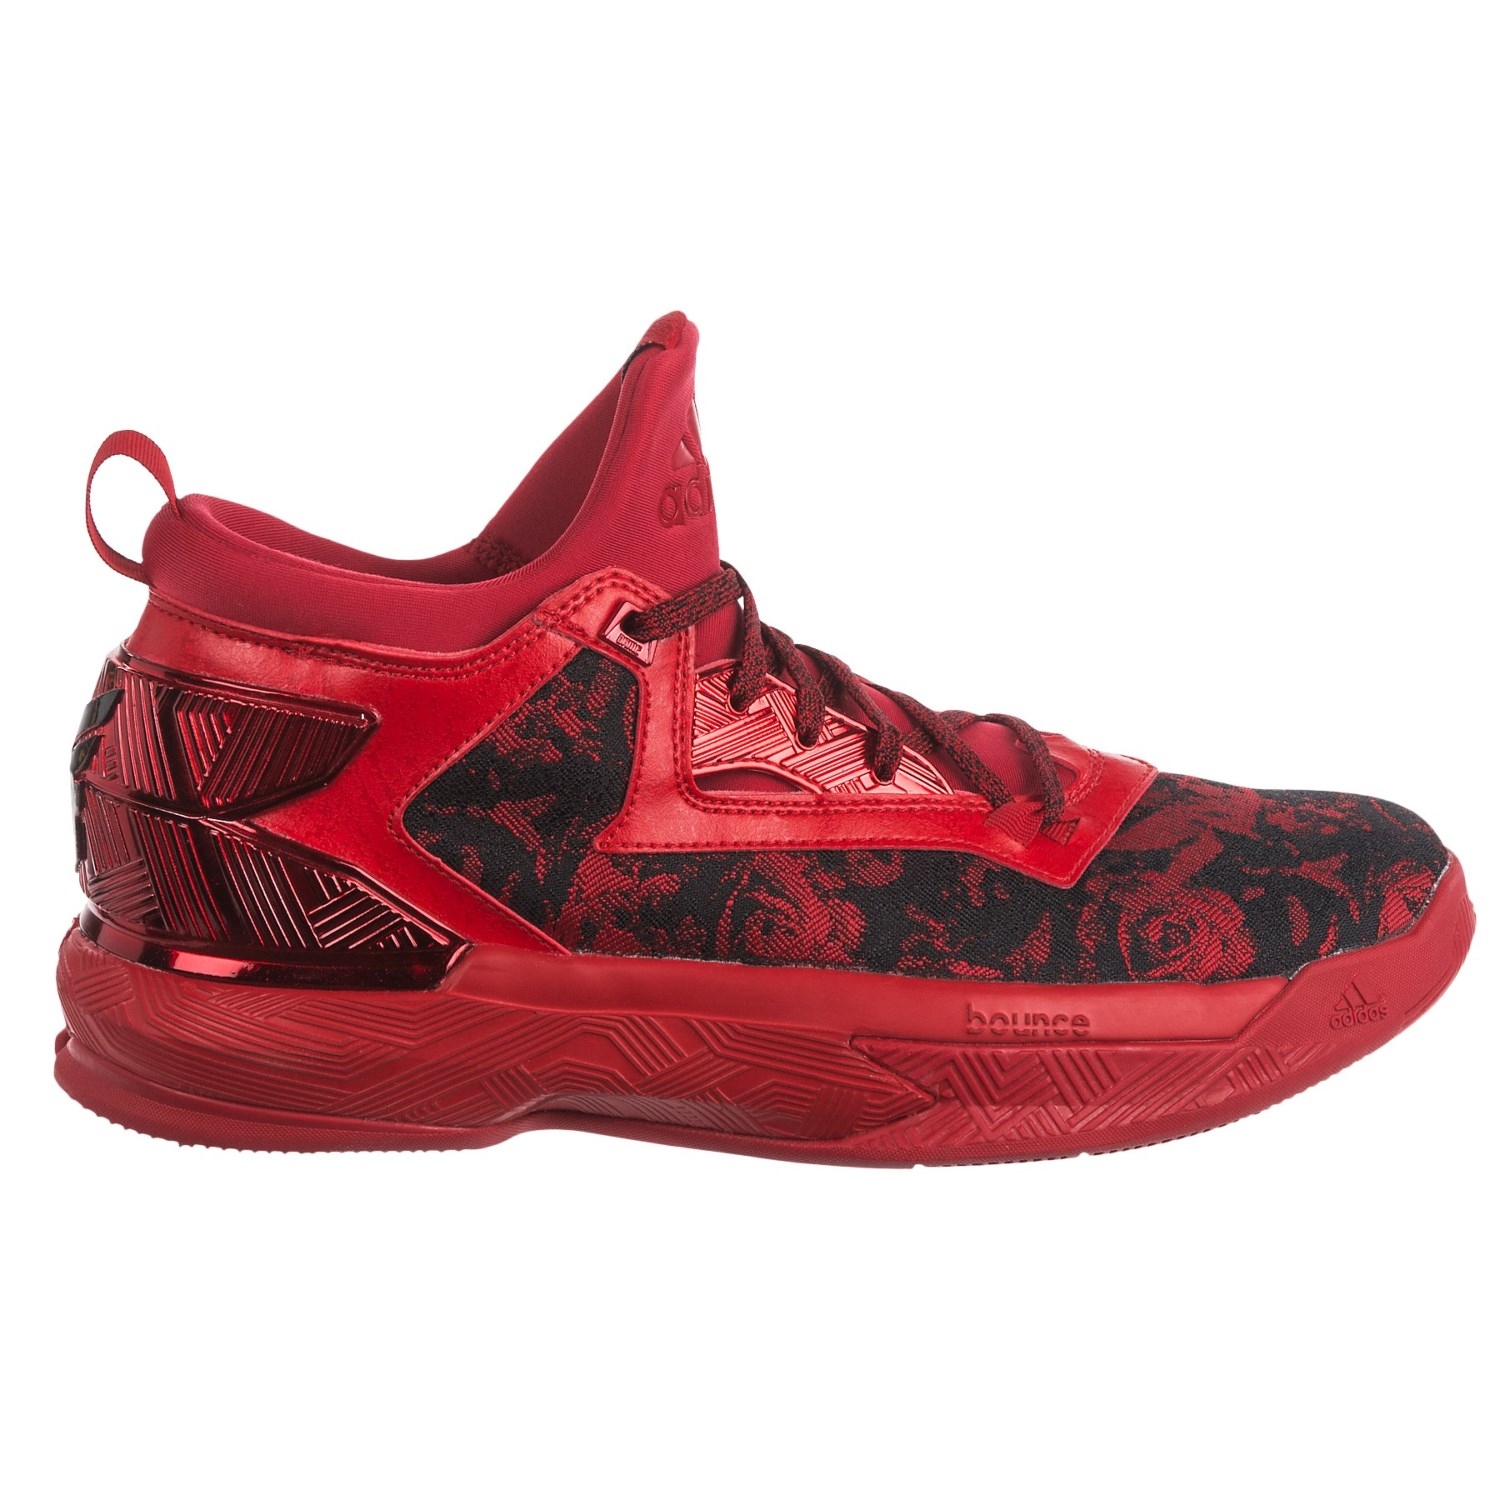 c5cd903dd5a4 adidas Damian Lillard 2 Basketball Shoes (For Men) - Save 20%